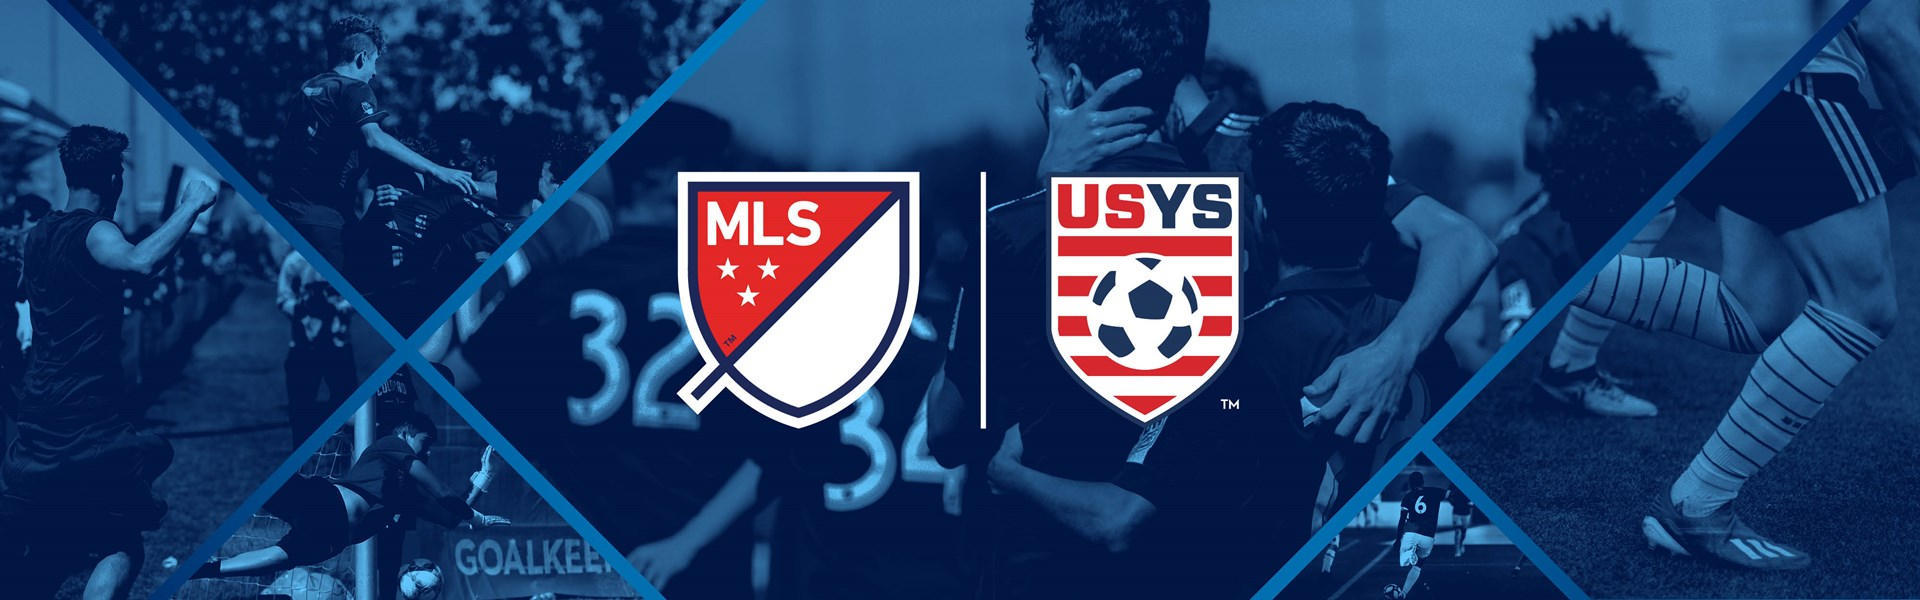 MLS_USYS_graphic-1920x600